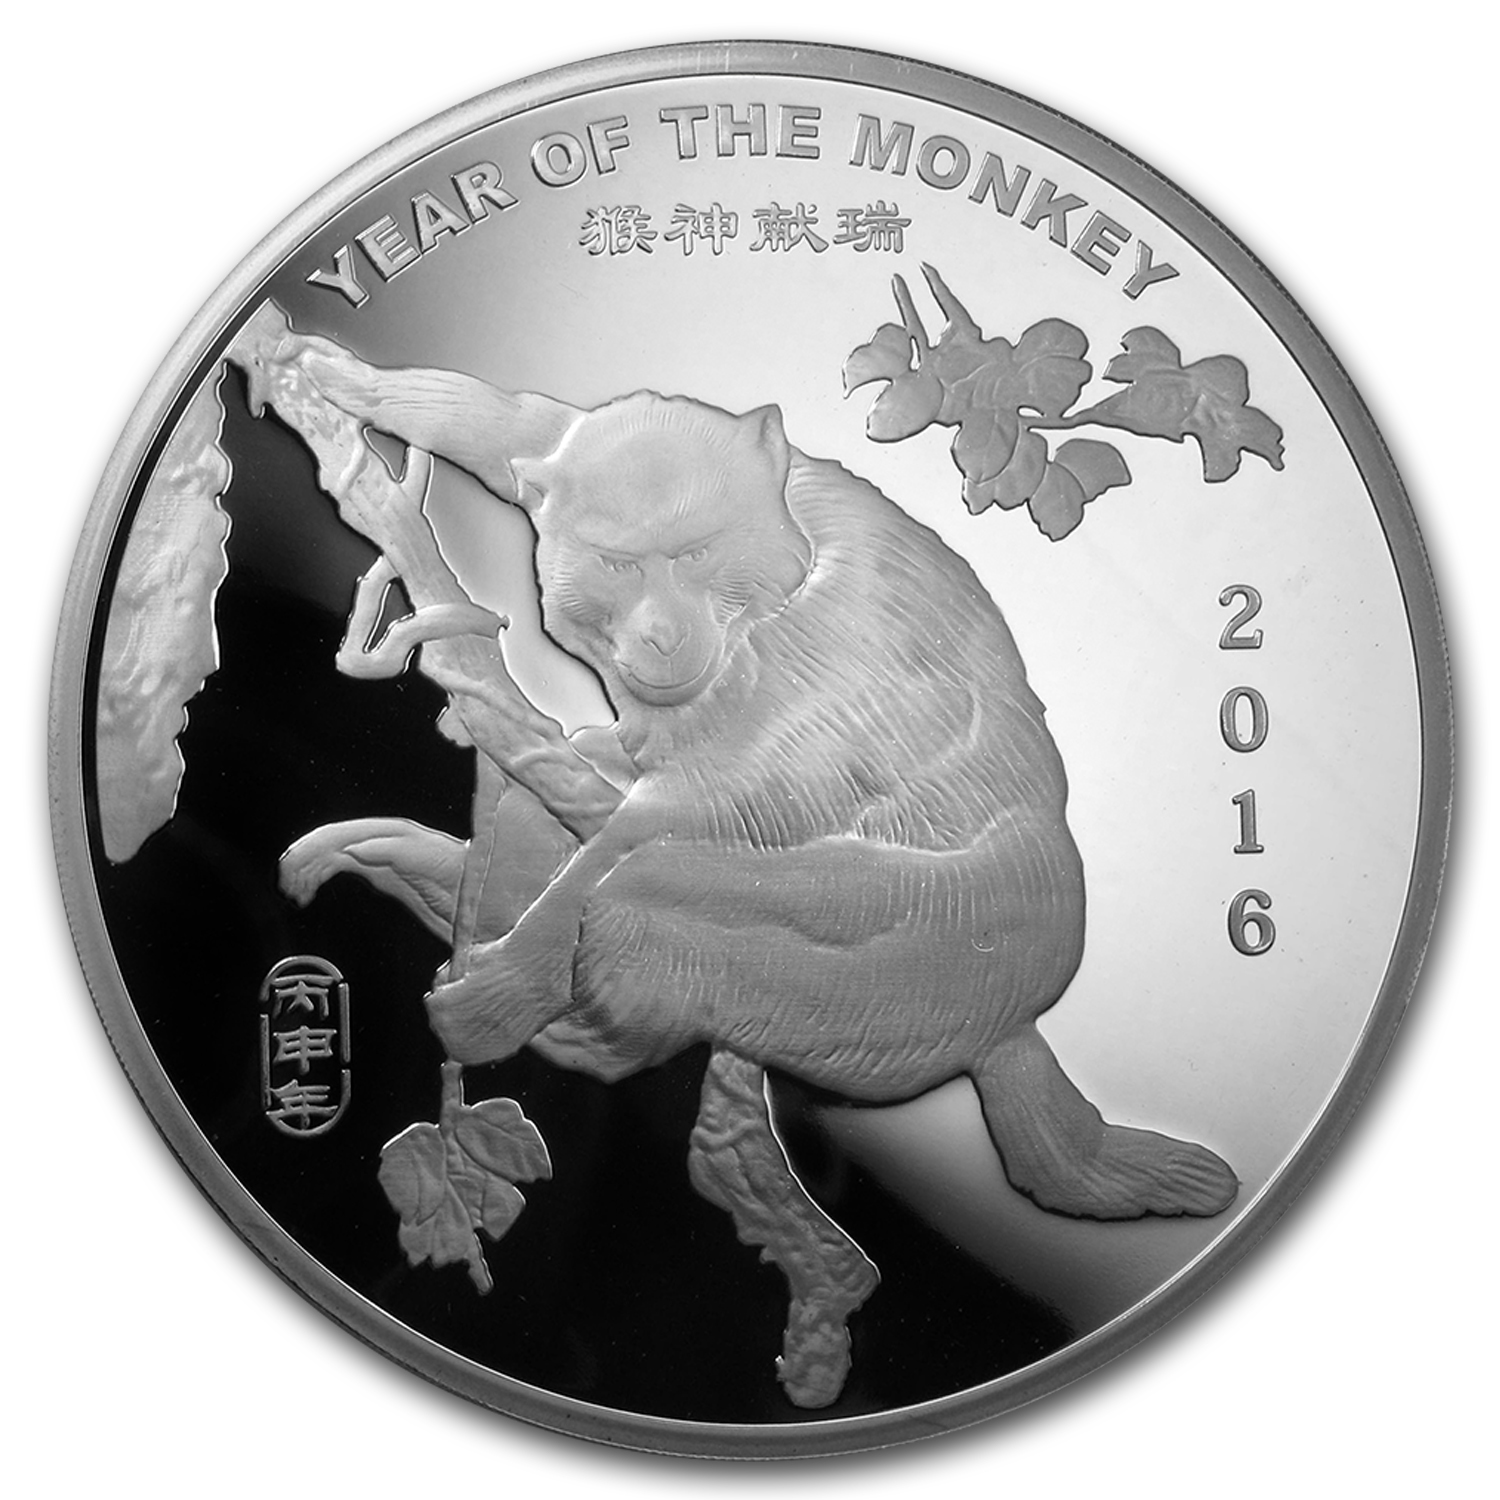 10 oz Silver Round - APMEX (2016 Year of the Monkey)